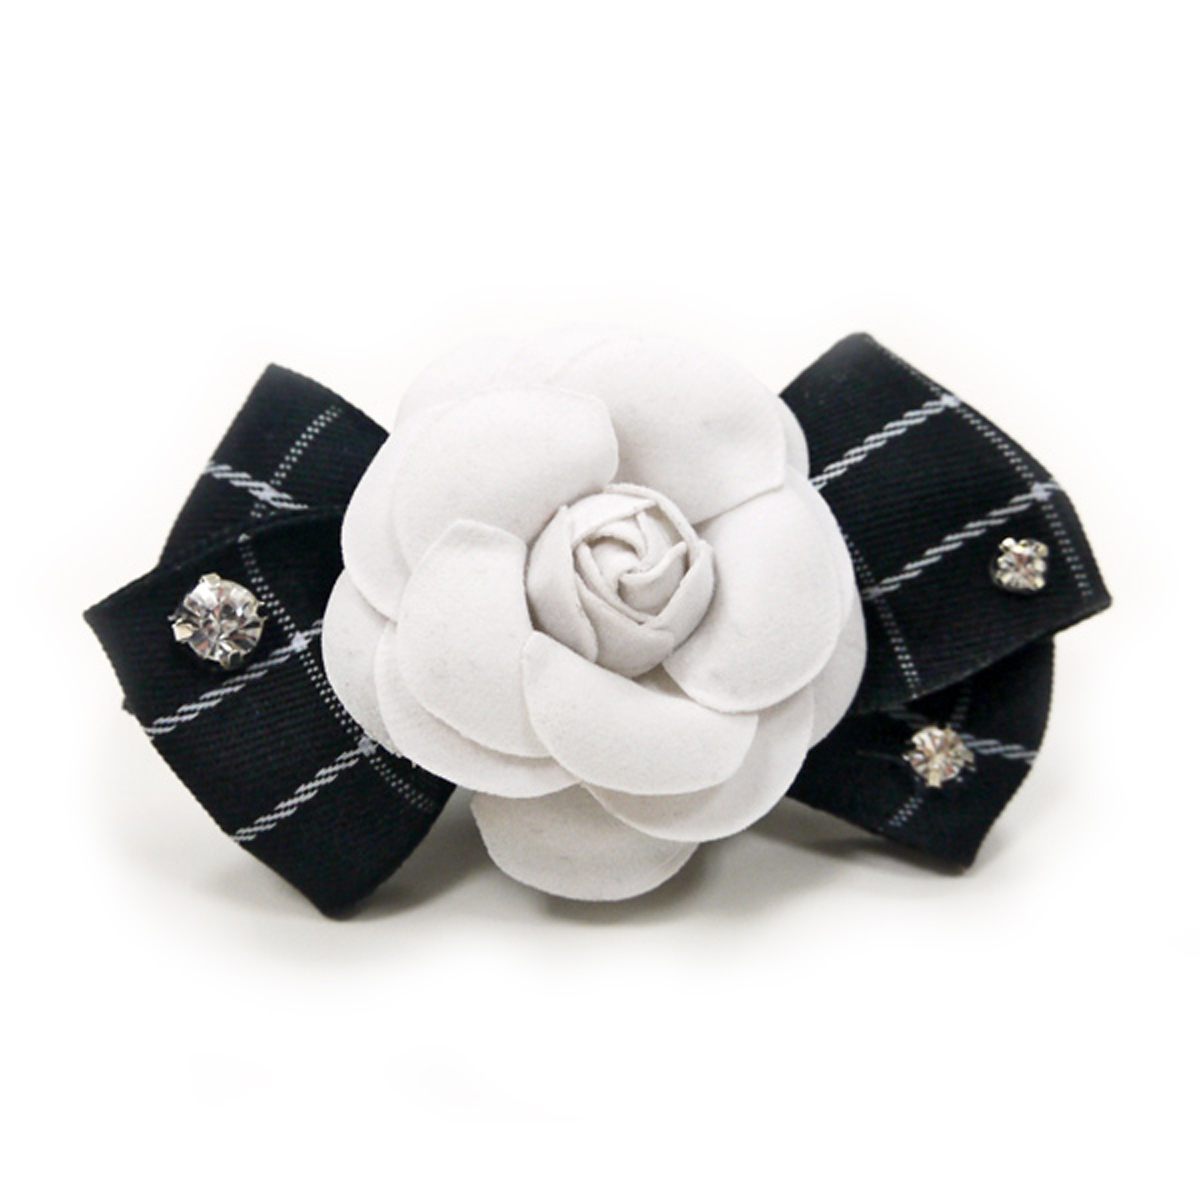 EasyBOW Flower Bow Dog Collar Attachment by Dogo - Black